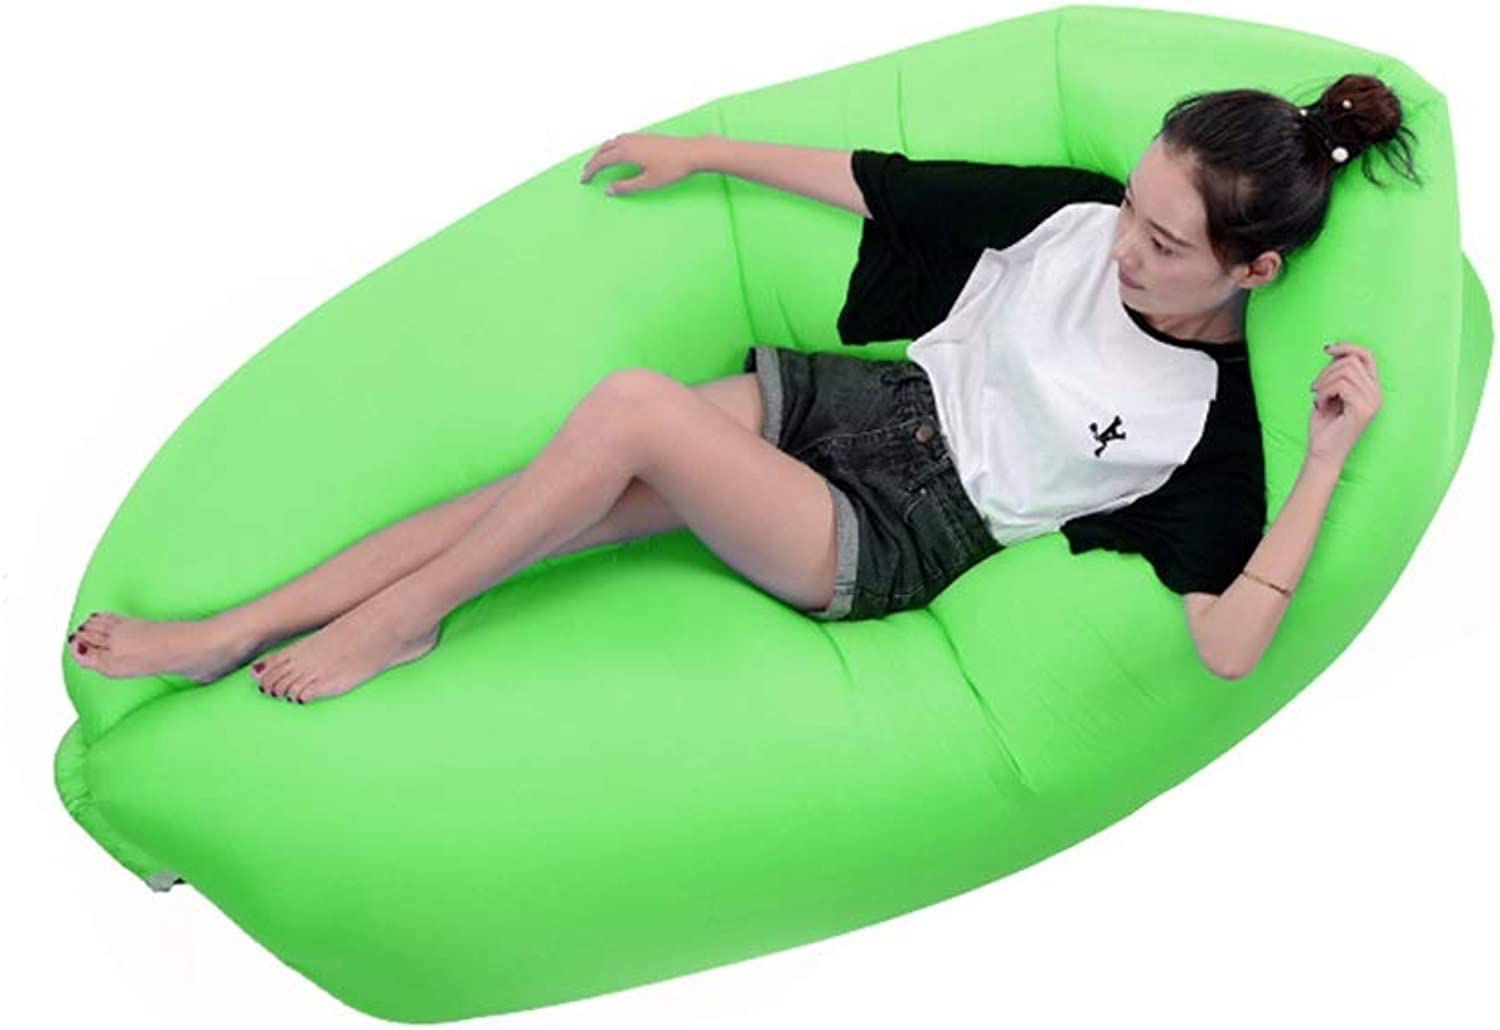 Air Mattresses Inflatable Couch Inflatable Lounger Air Lounger Outdoor Lazy Portable Inflatable Sofa Recliner High LoadBearing Folding Indoor Inflatable Recliner